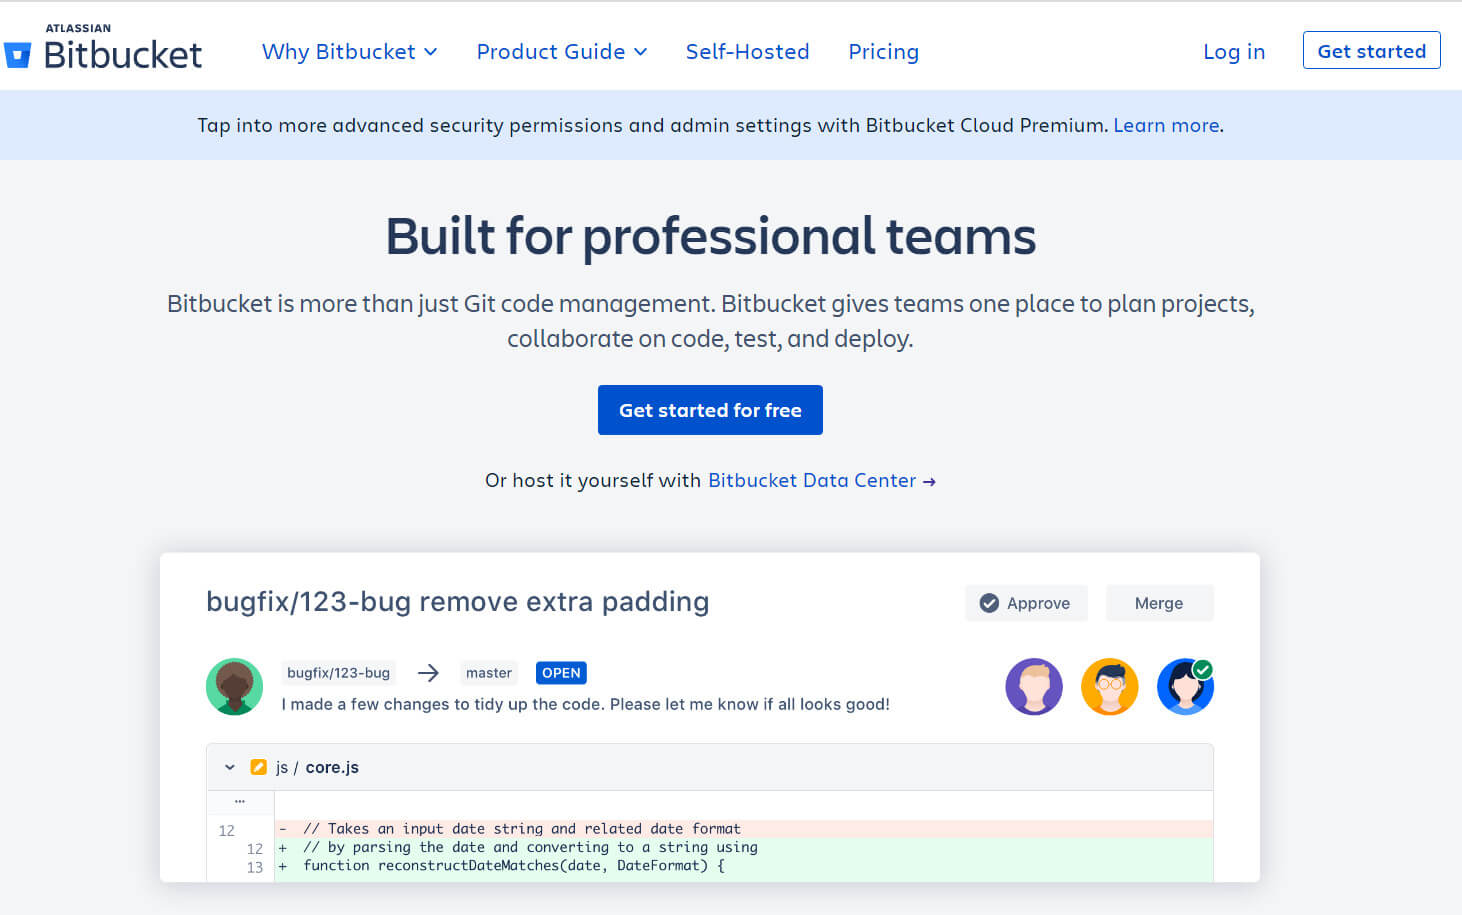 Front page of Bitbucket.